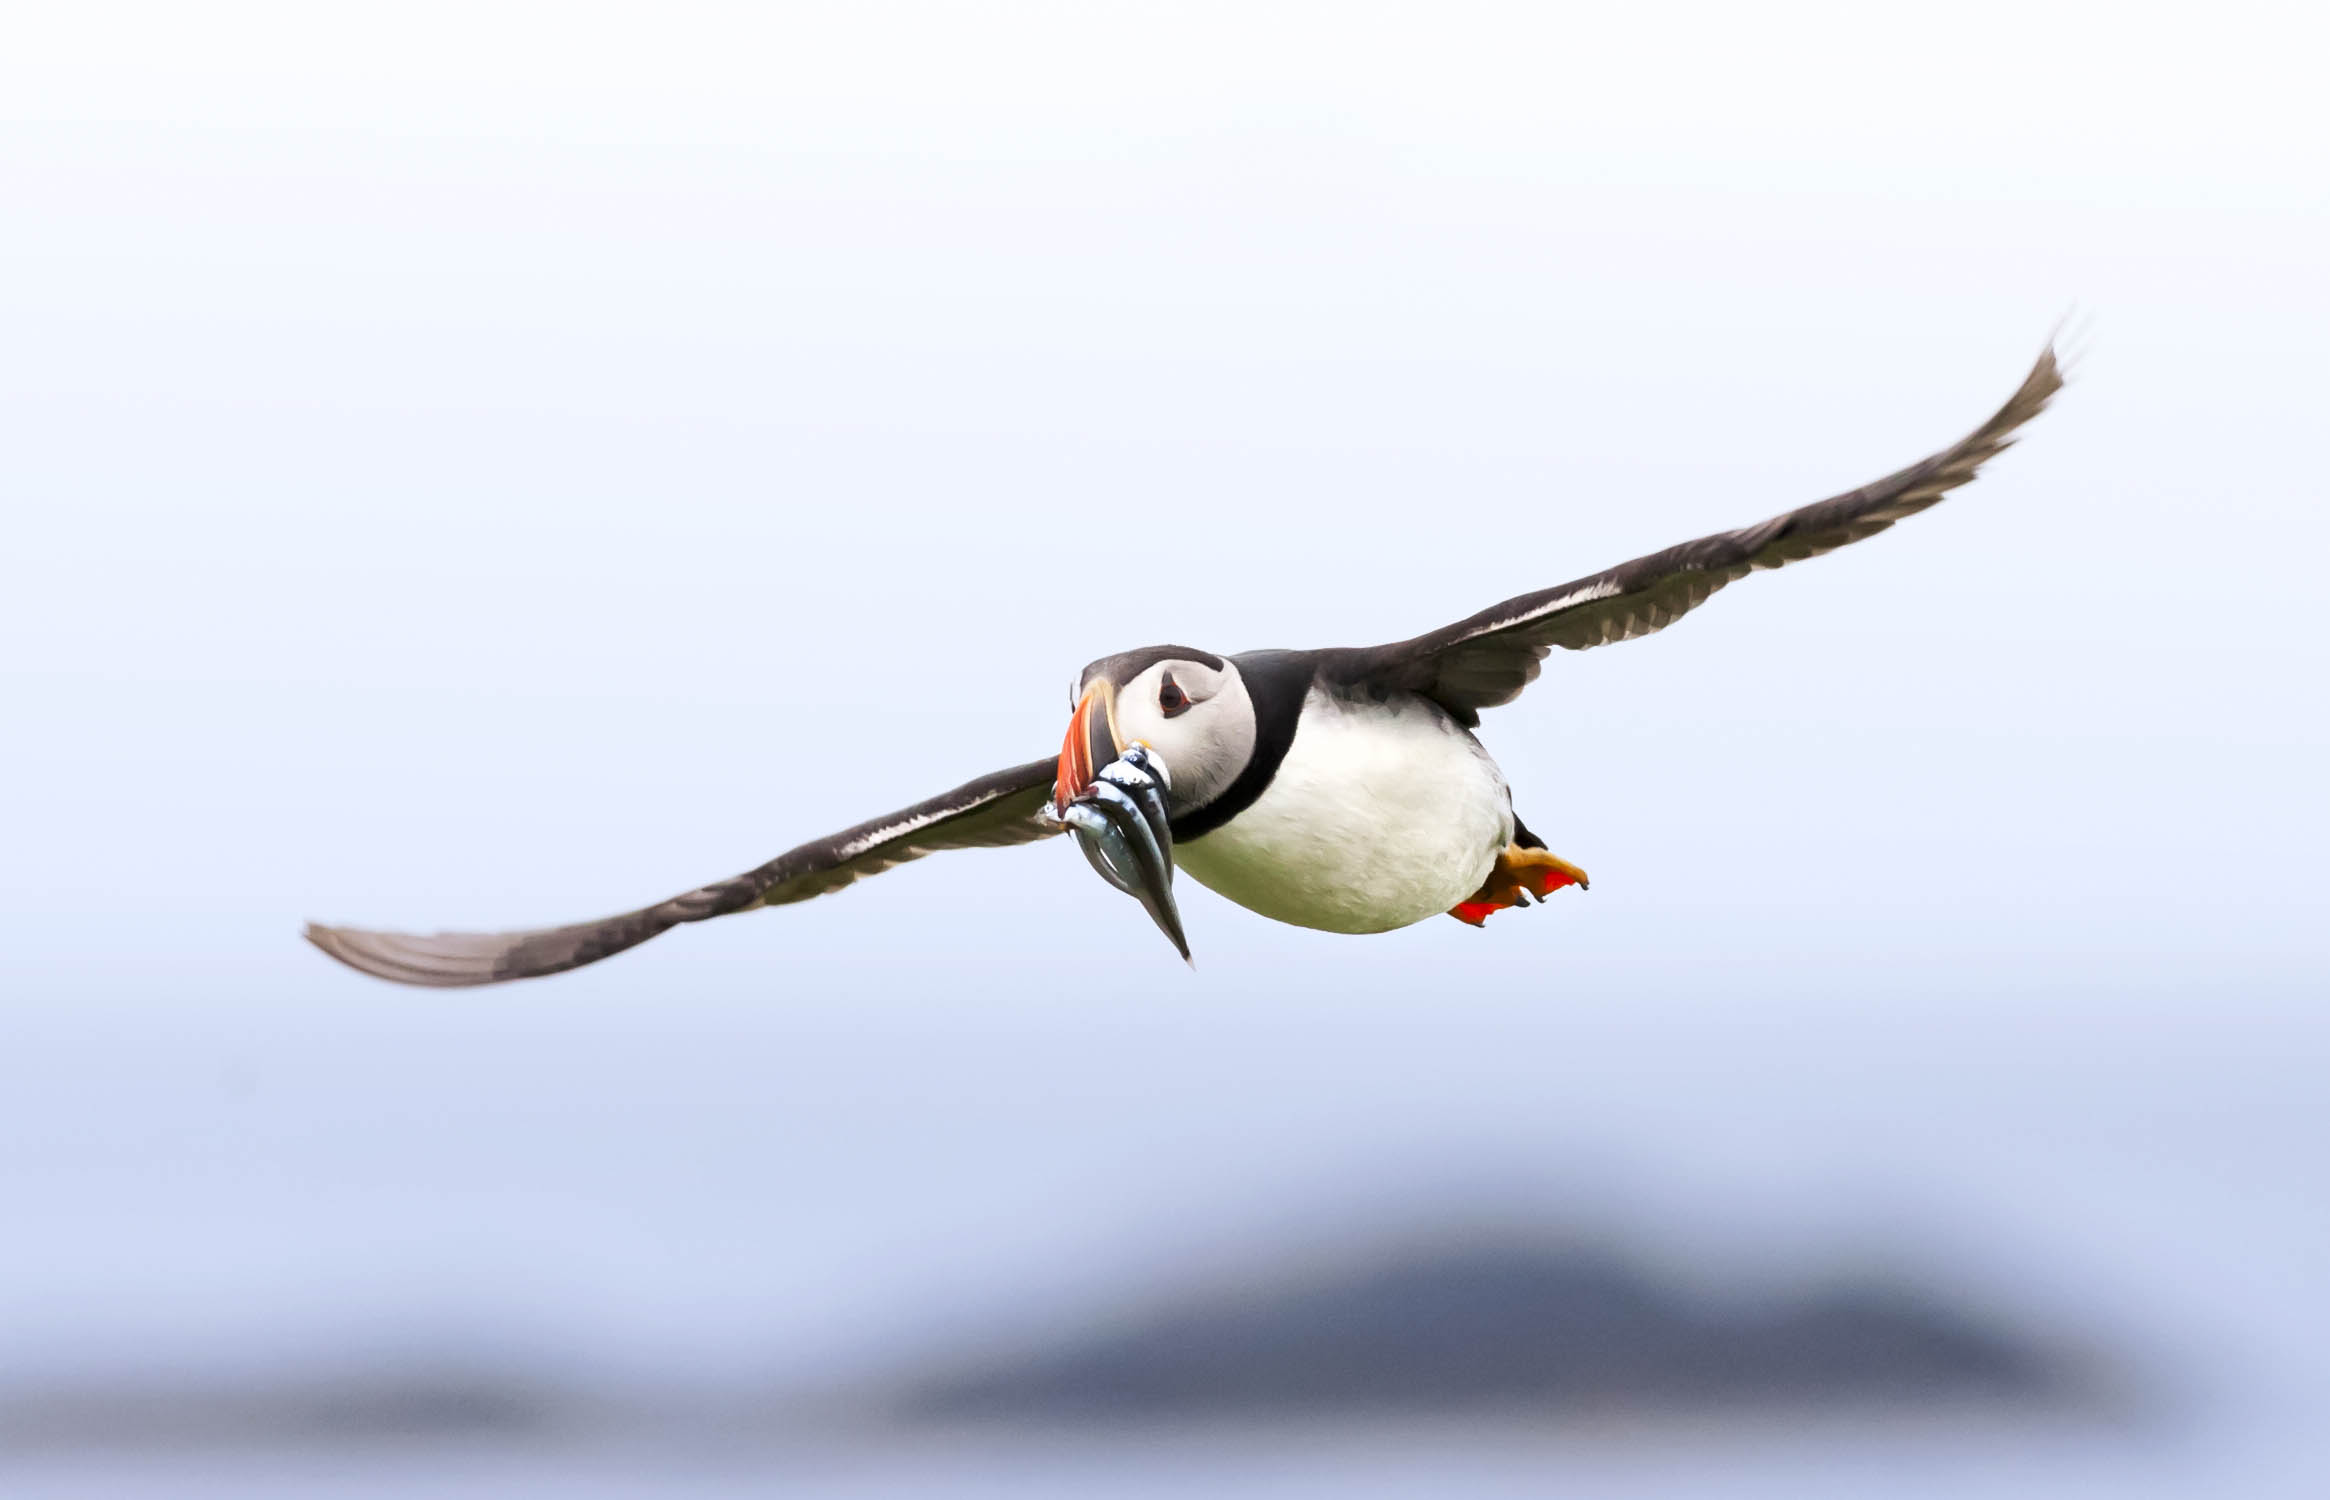 Puffin-In-Flight.jpg